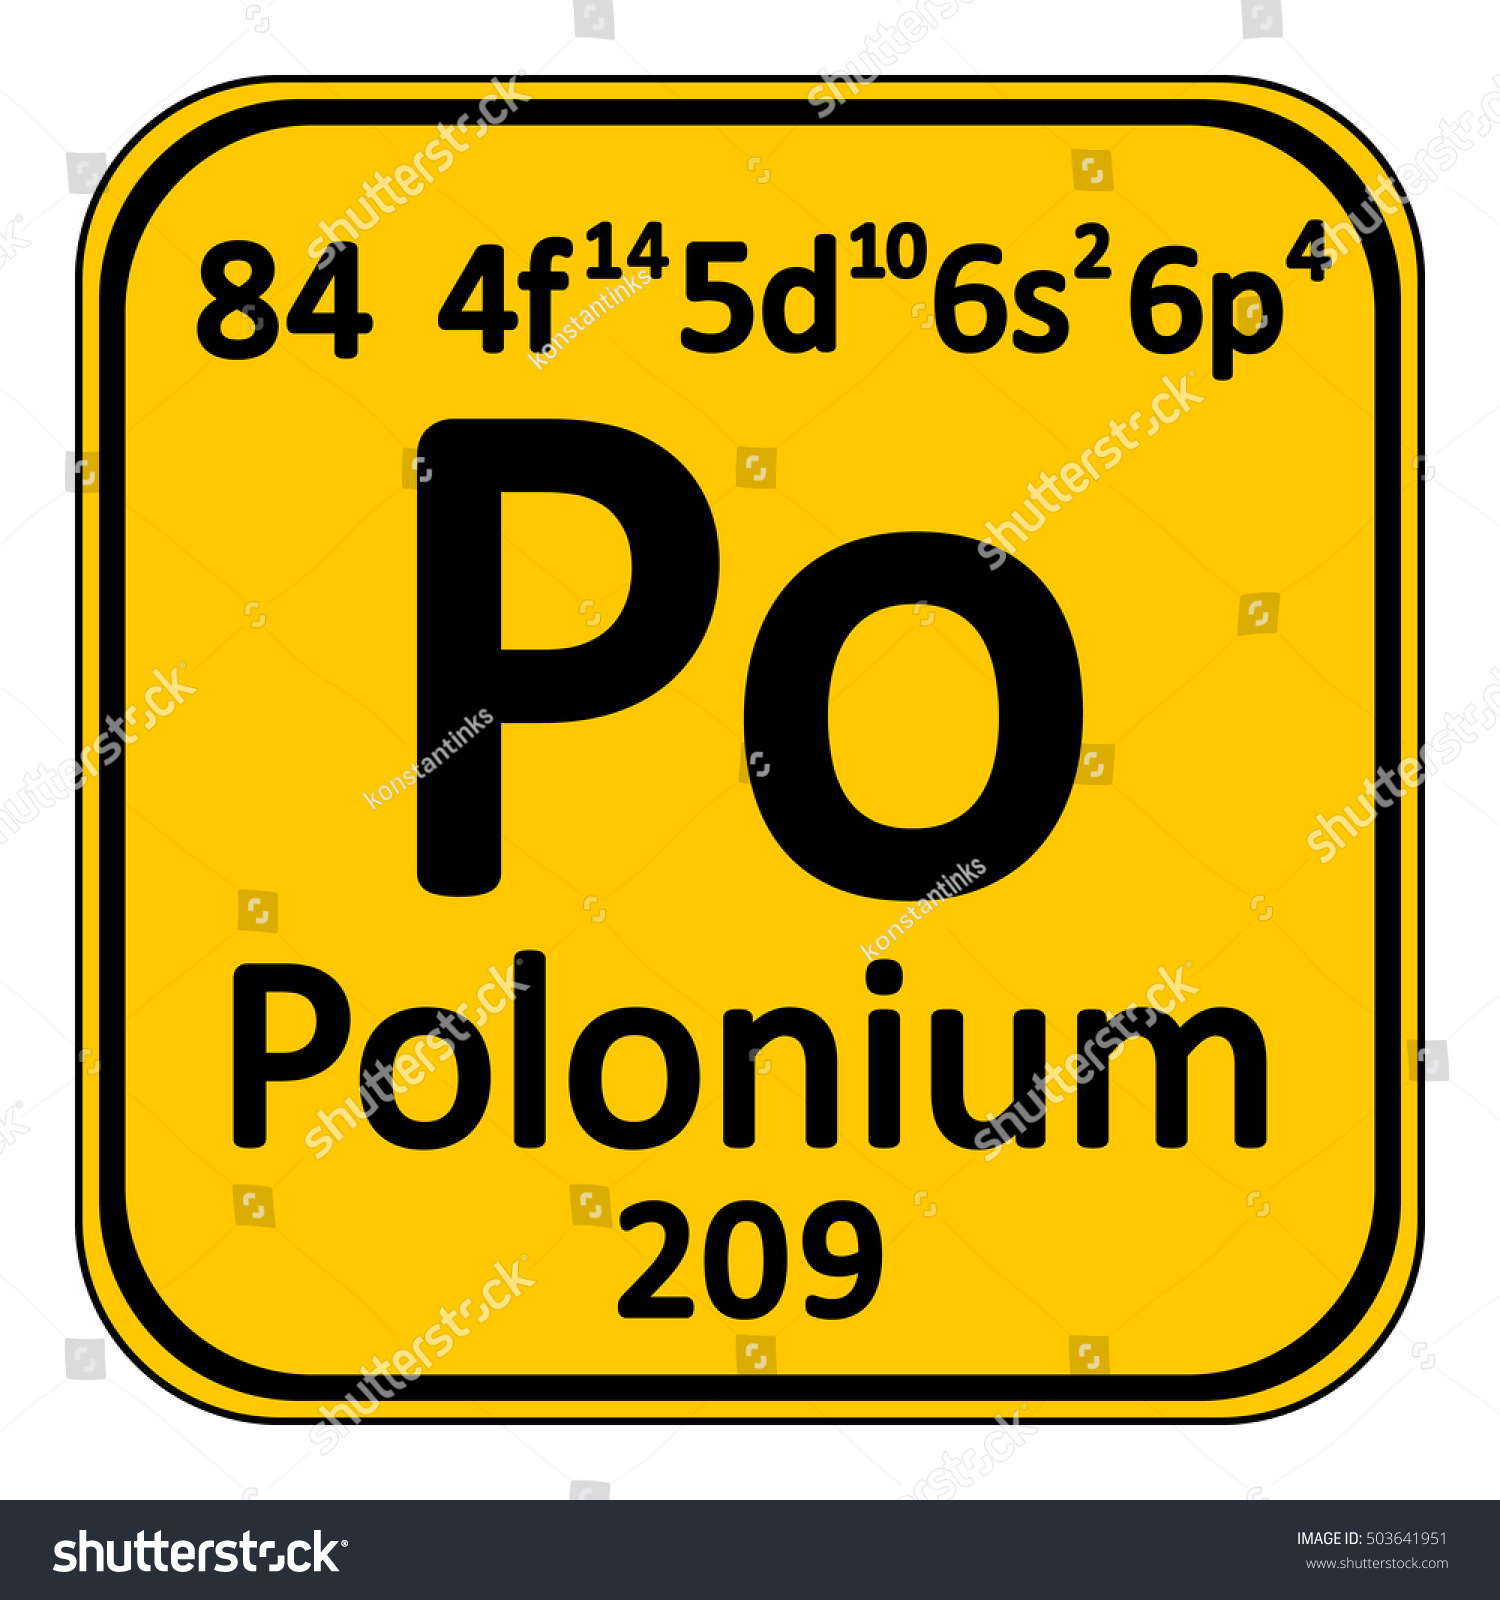 Periodic table element polonium icon on stock vector 503641951 periodic table element polonium icon on white background vector illustration gamestrikefo Choice Image